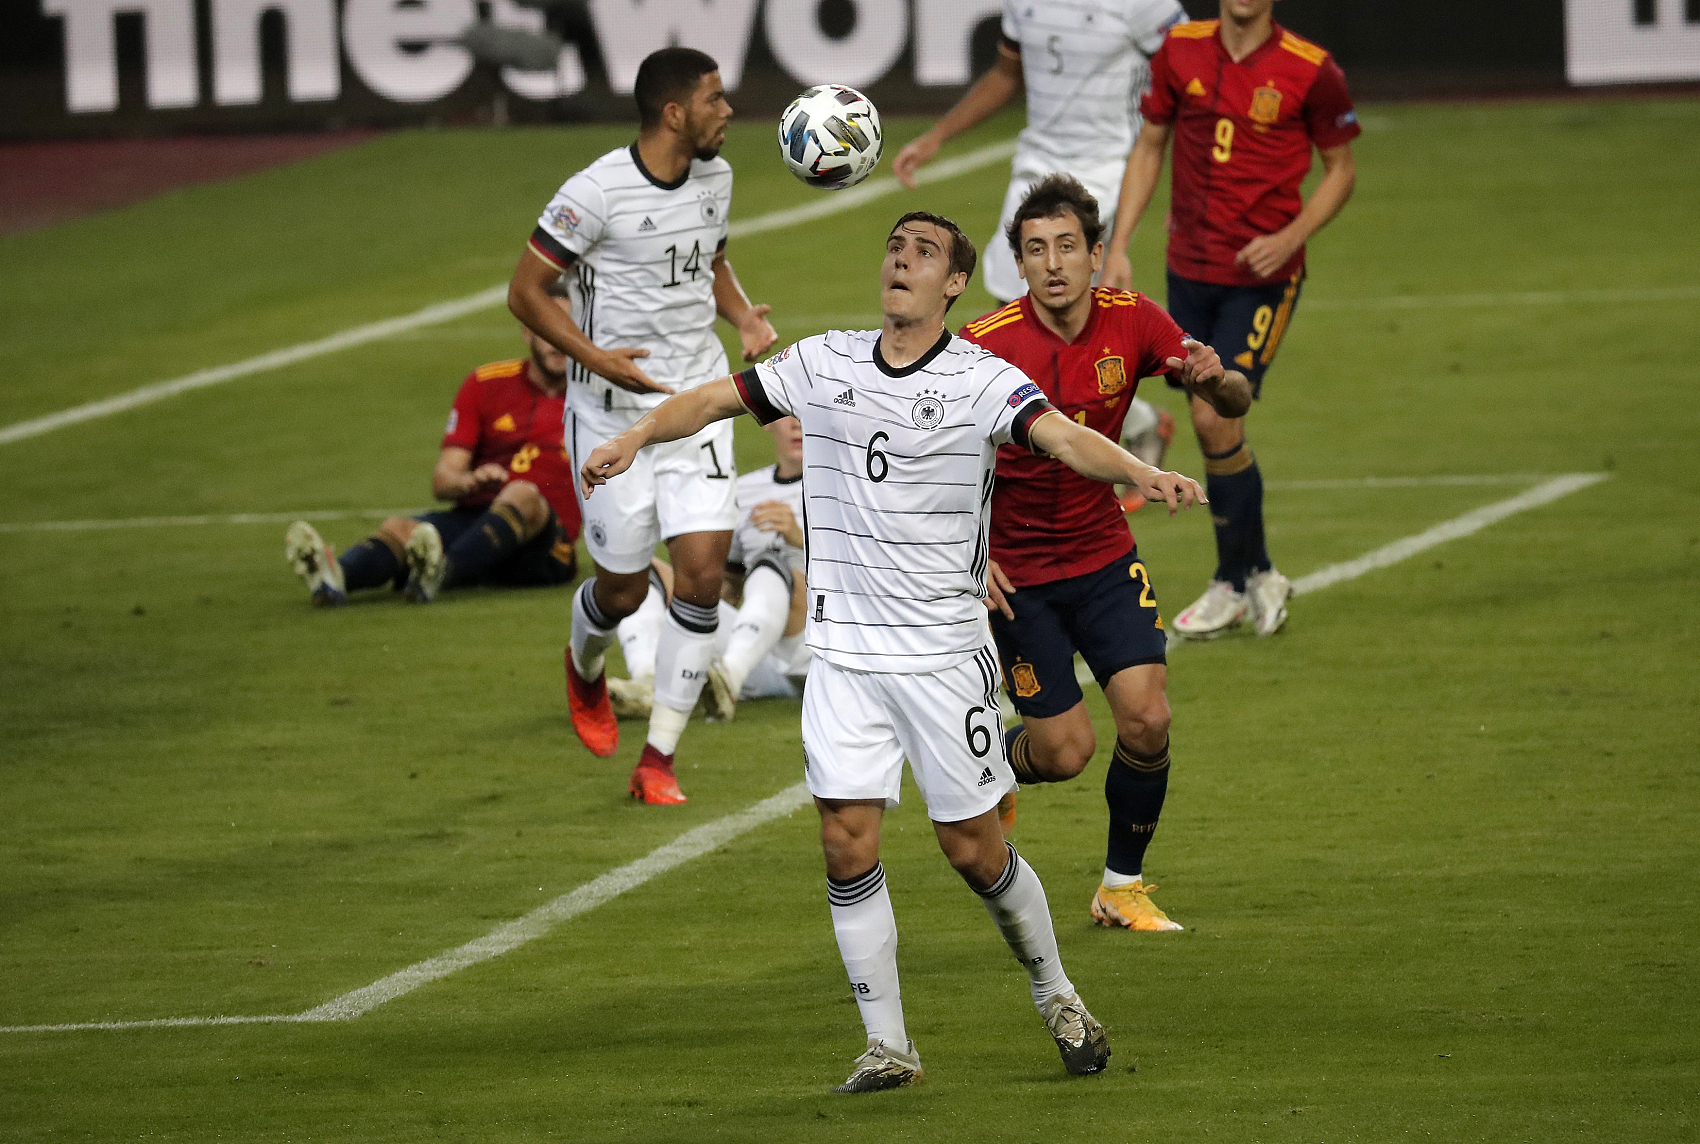 Spain thrash Germany to qualify for Nations League semifinals